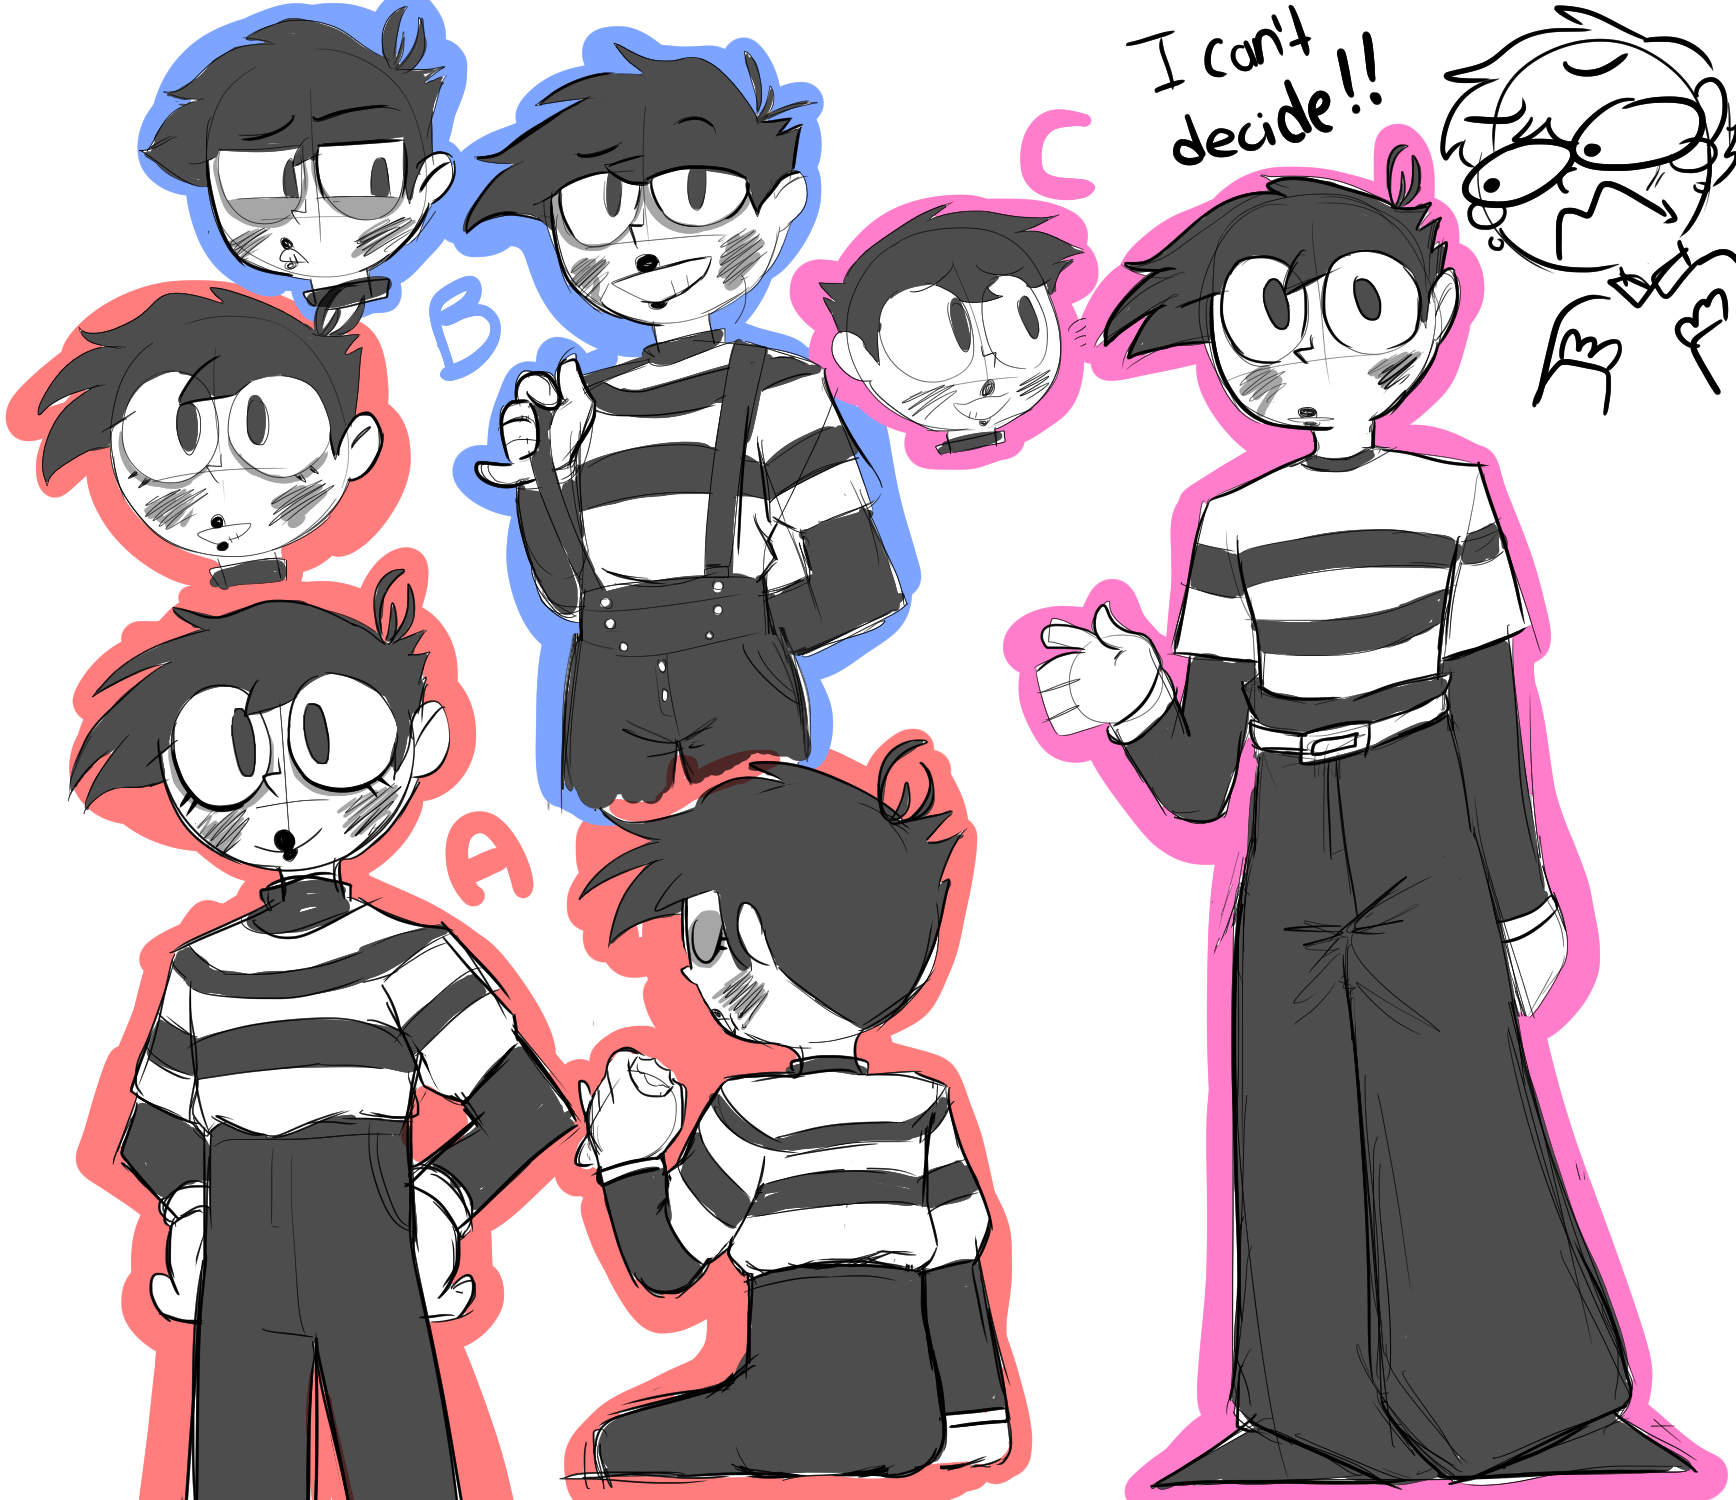 I can't choose a way to draw Wes (Doodles)